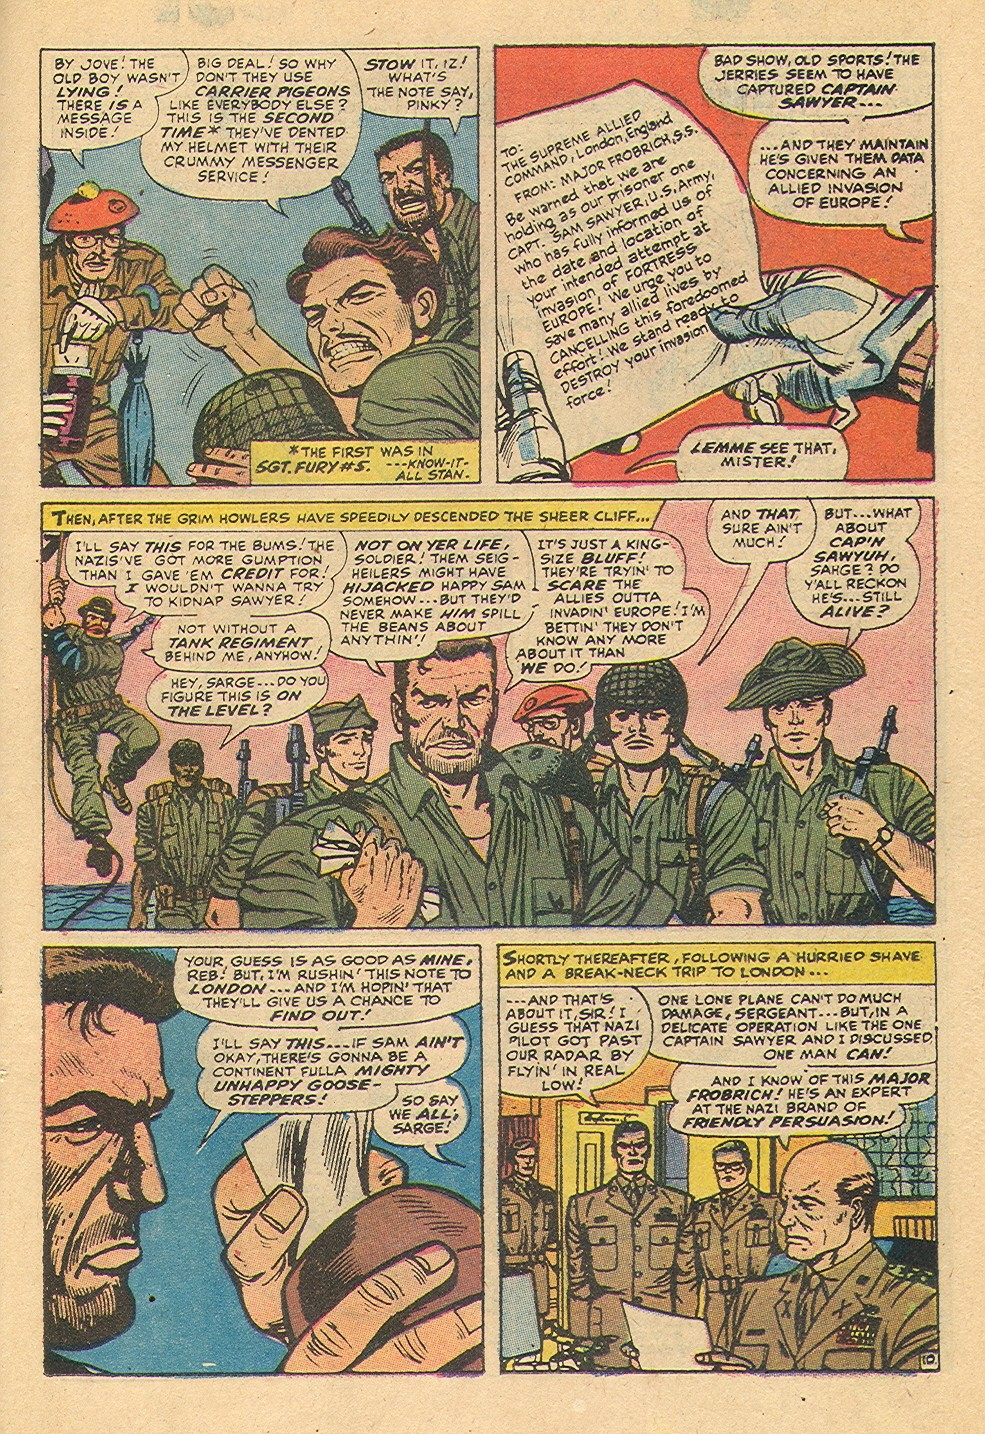 Read online Sgt. Fury comic -  Issue #92 - 35